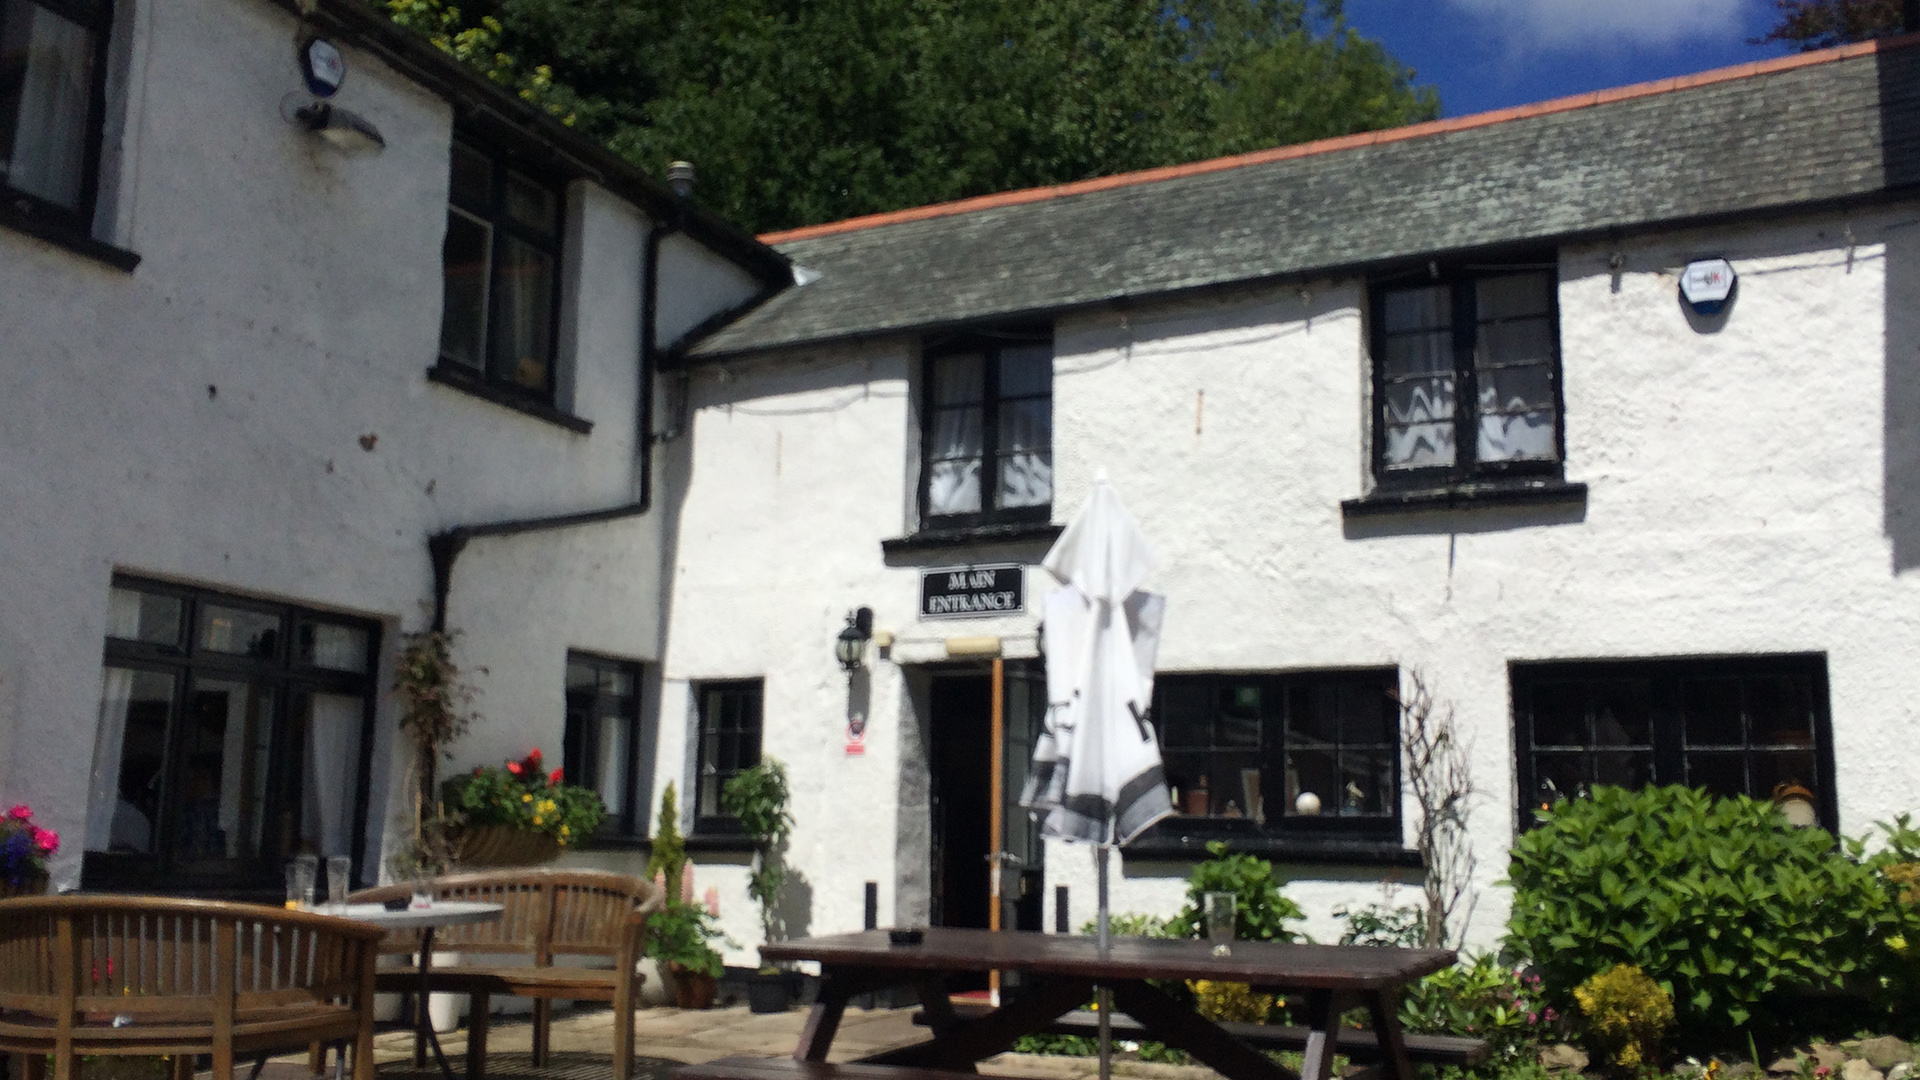 The Muddiford Inn